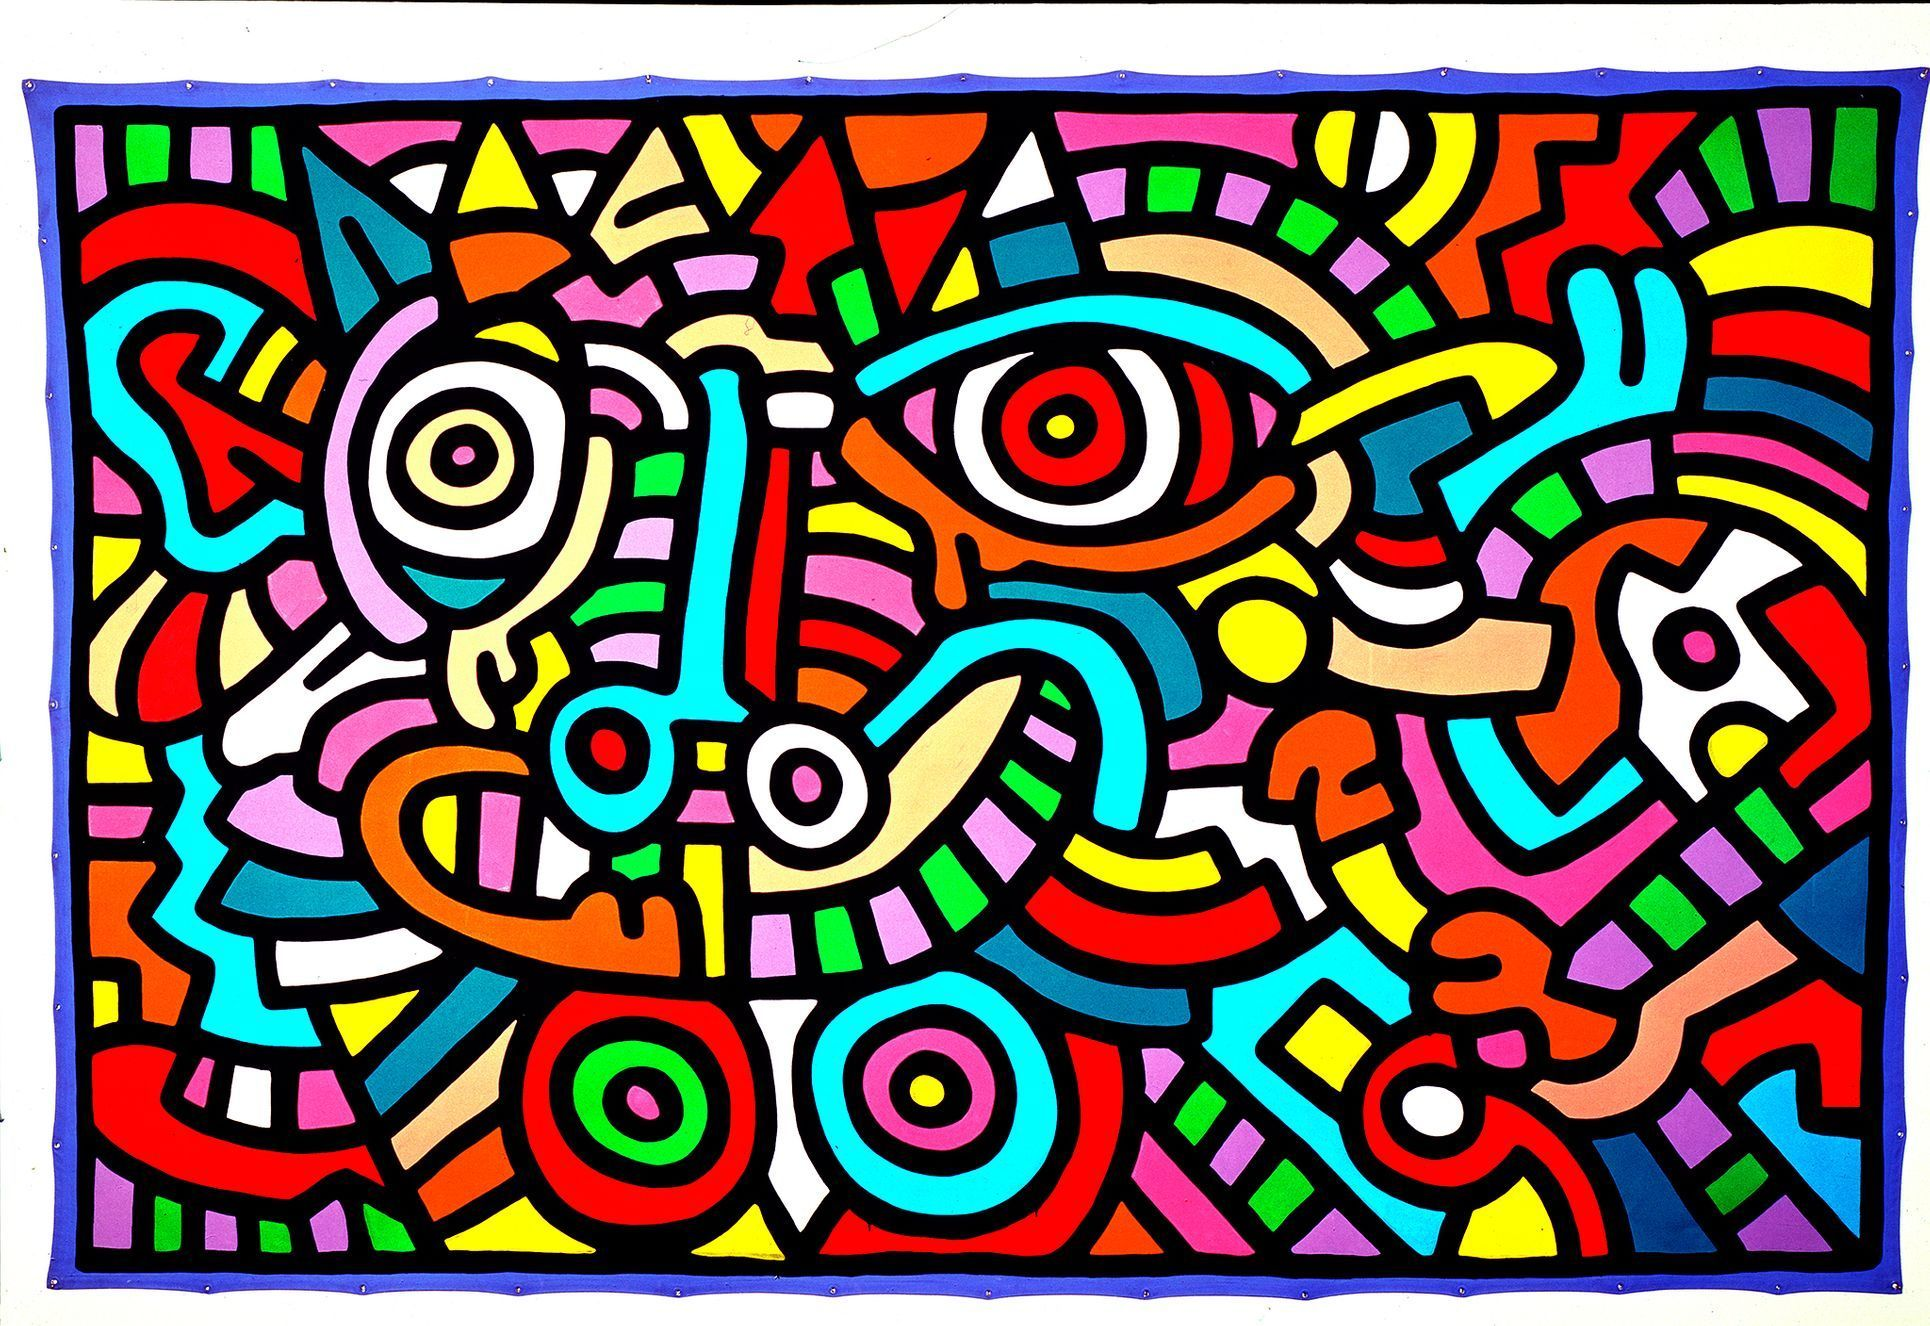 Keith Haring: Untitled, 1986